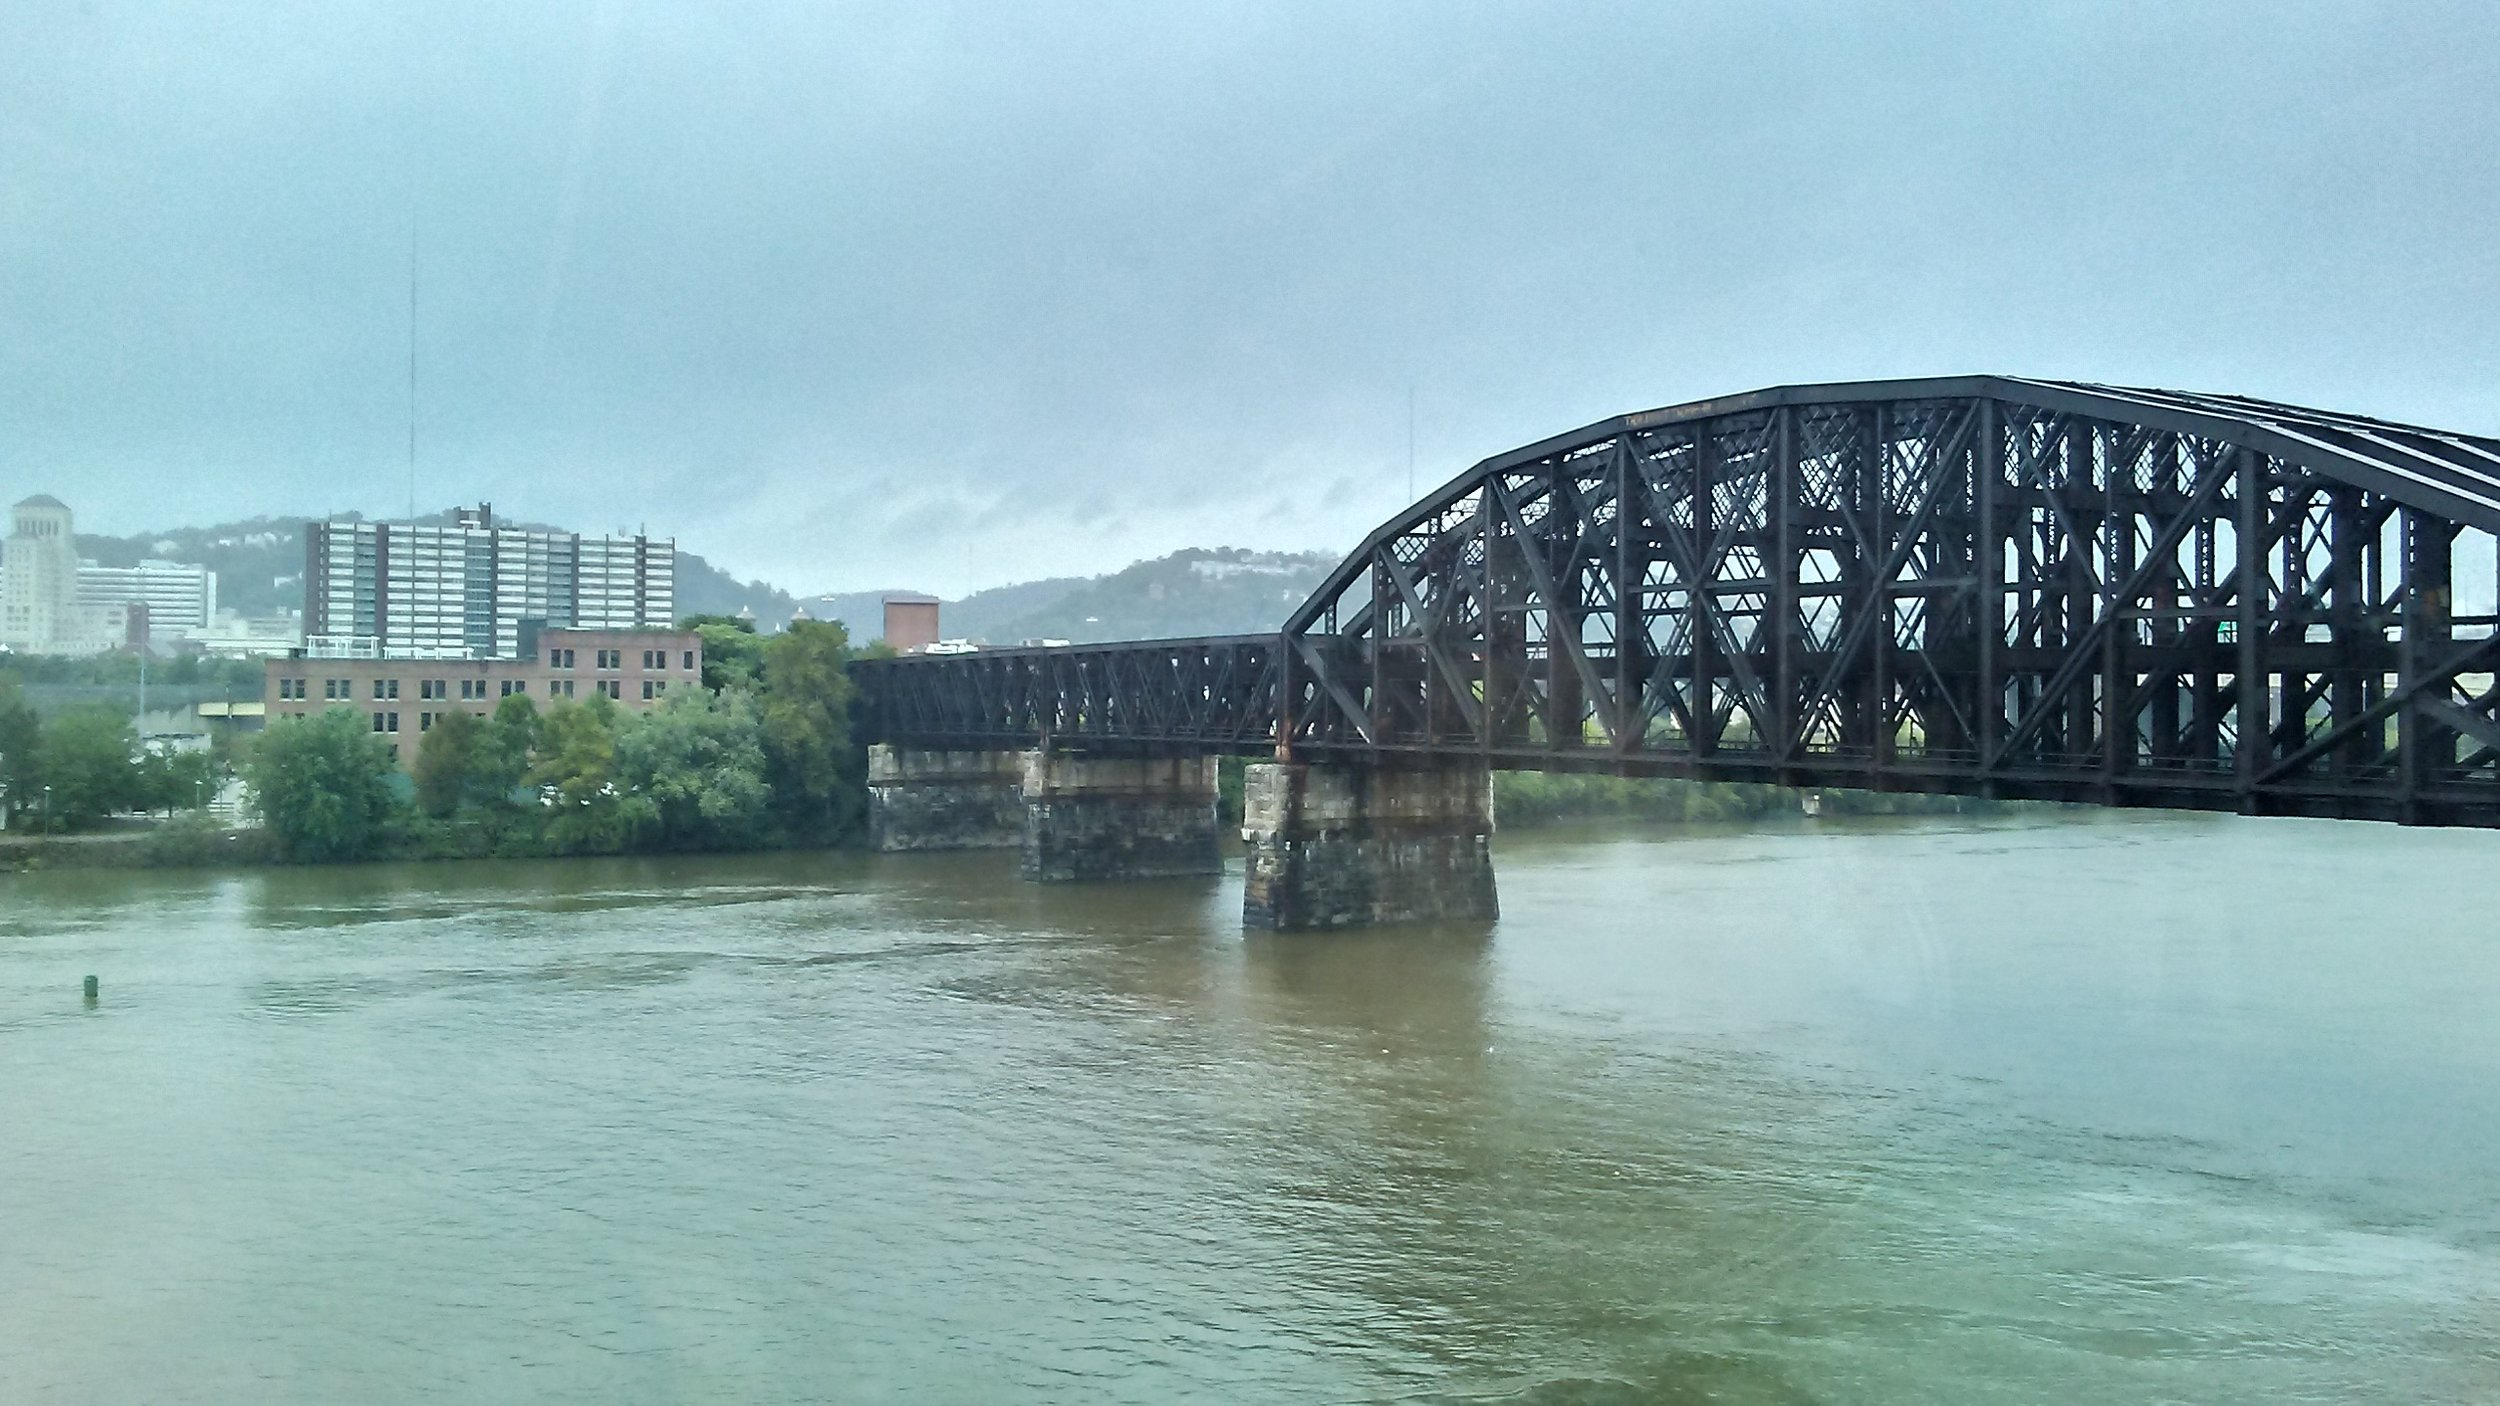 Across the Allegheny